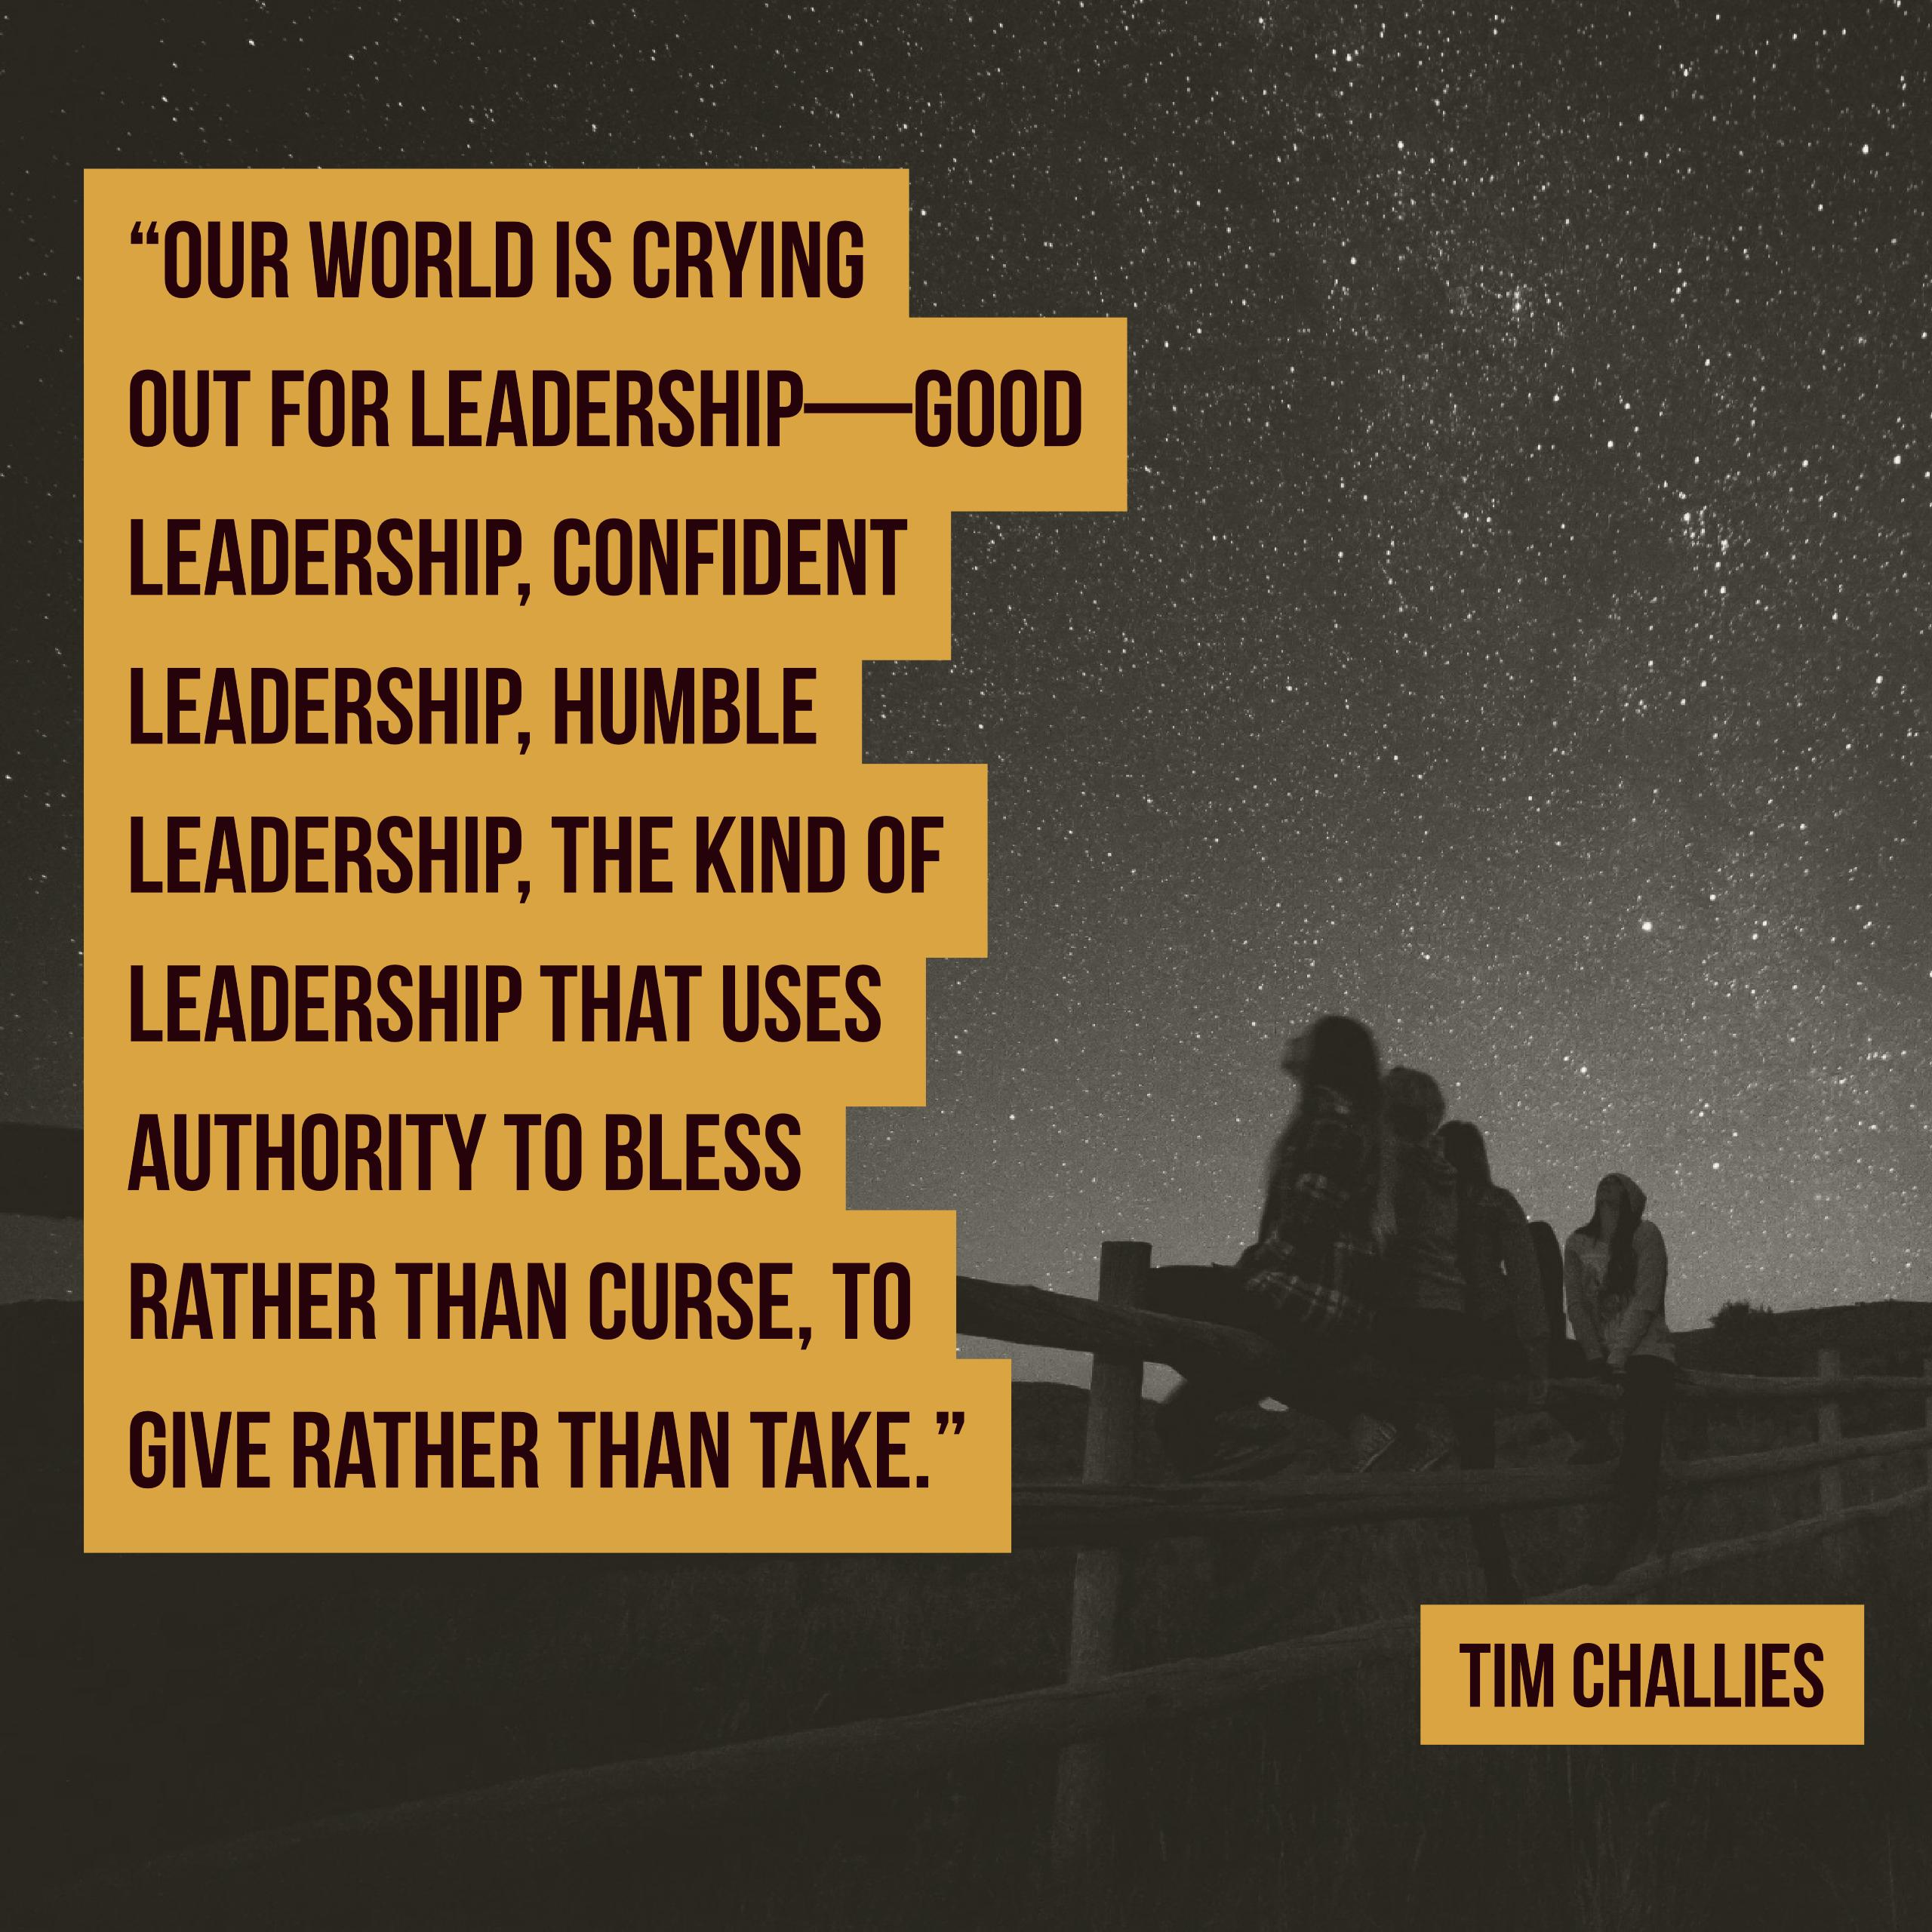 Tim Challies on Leadership